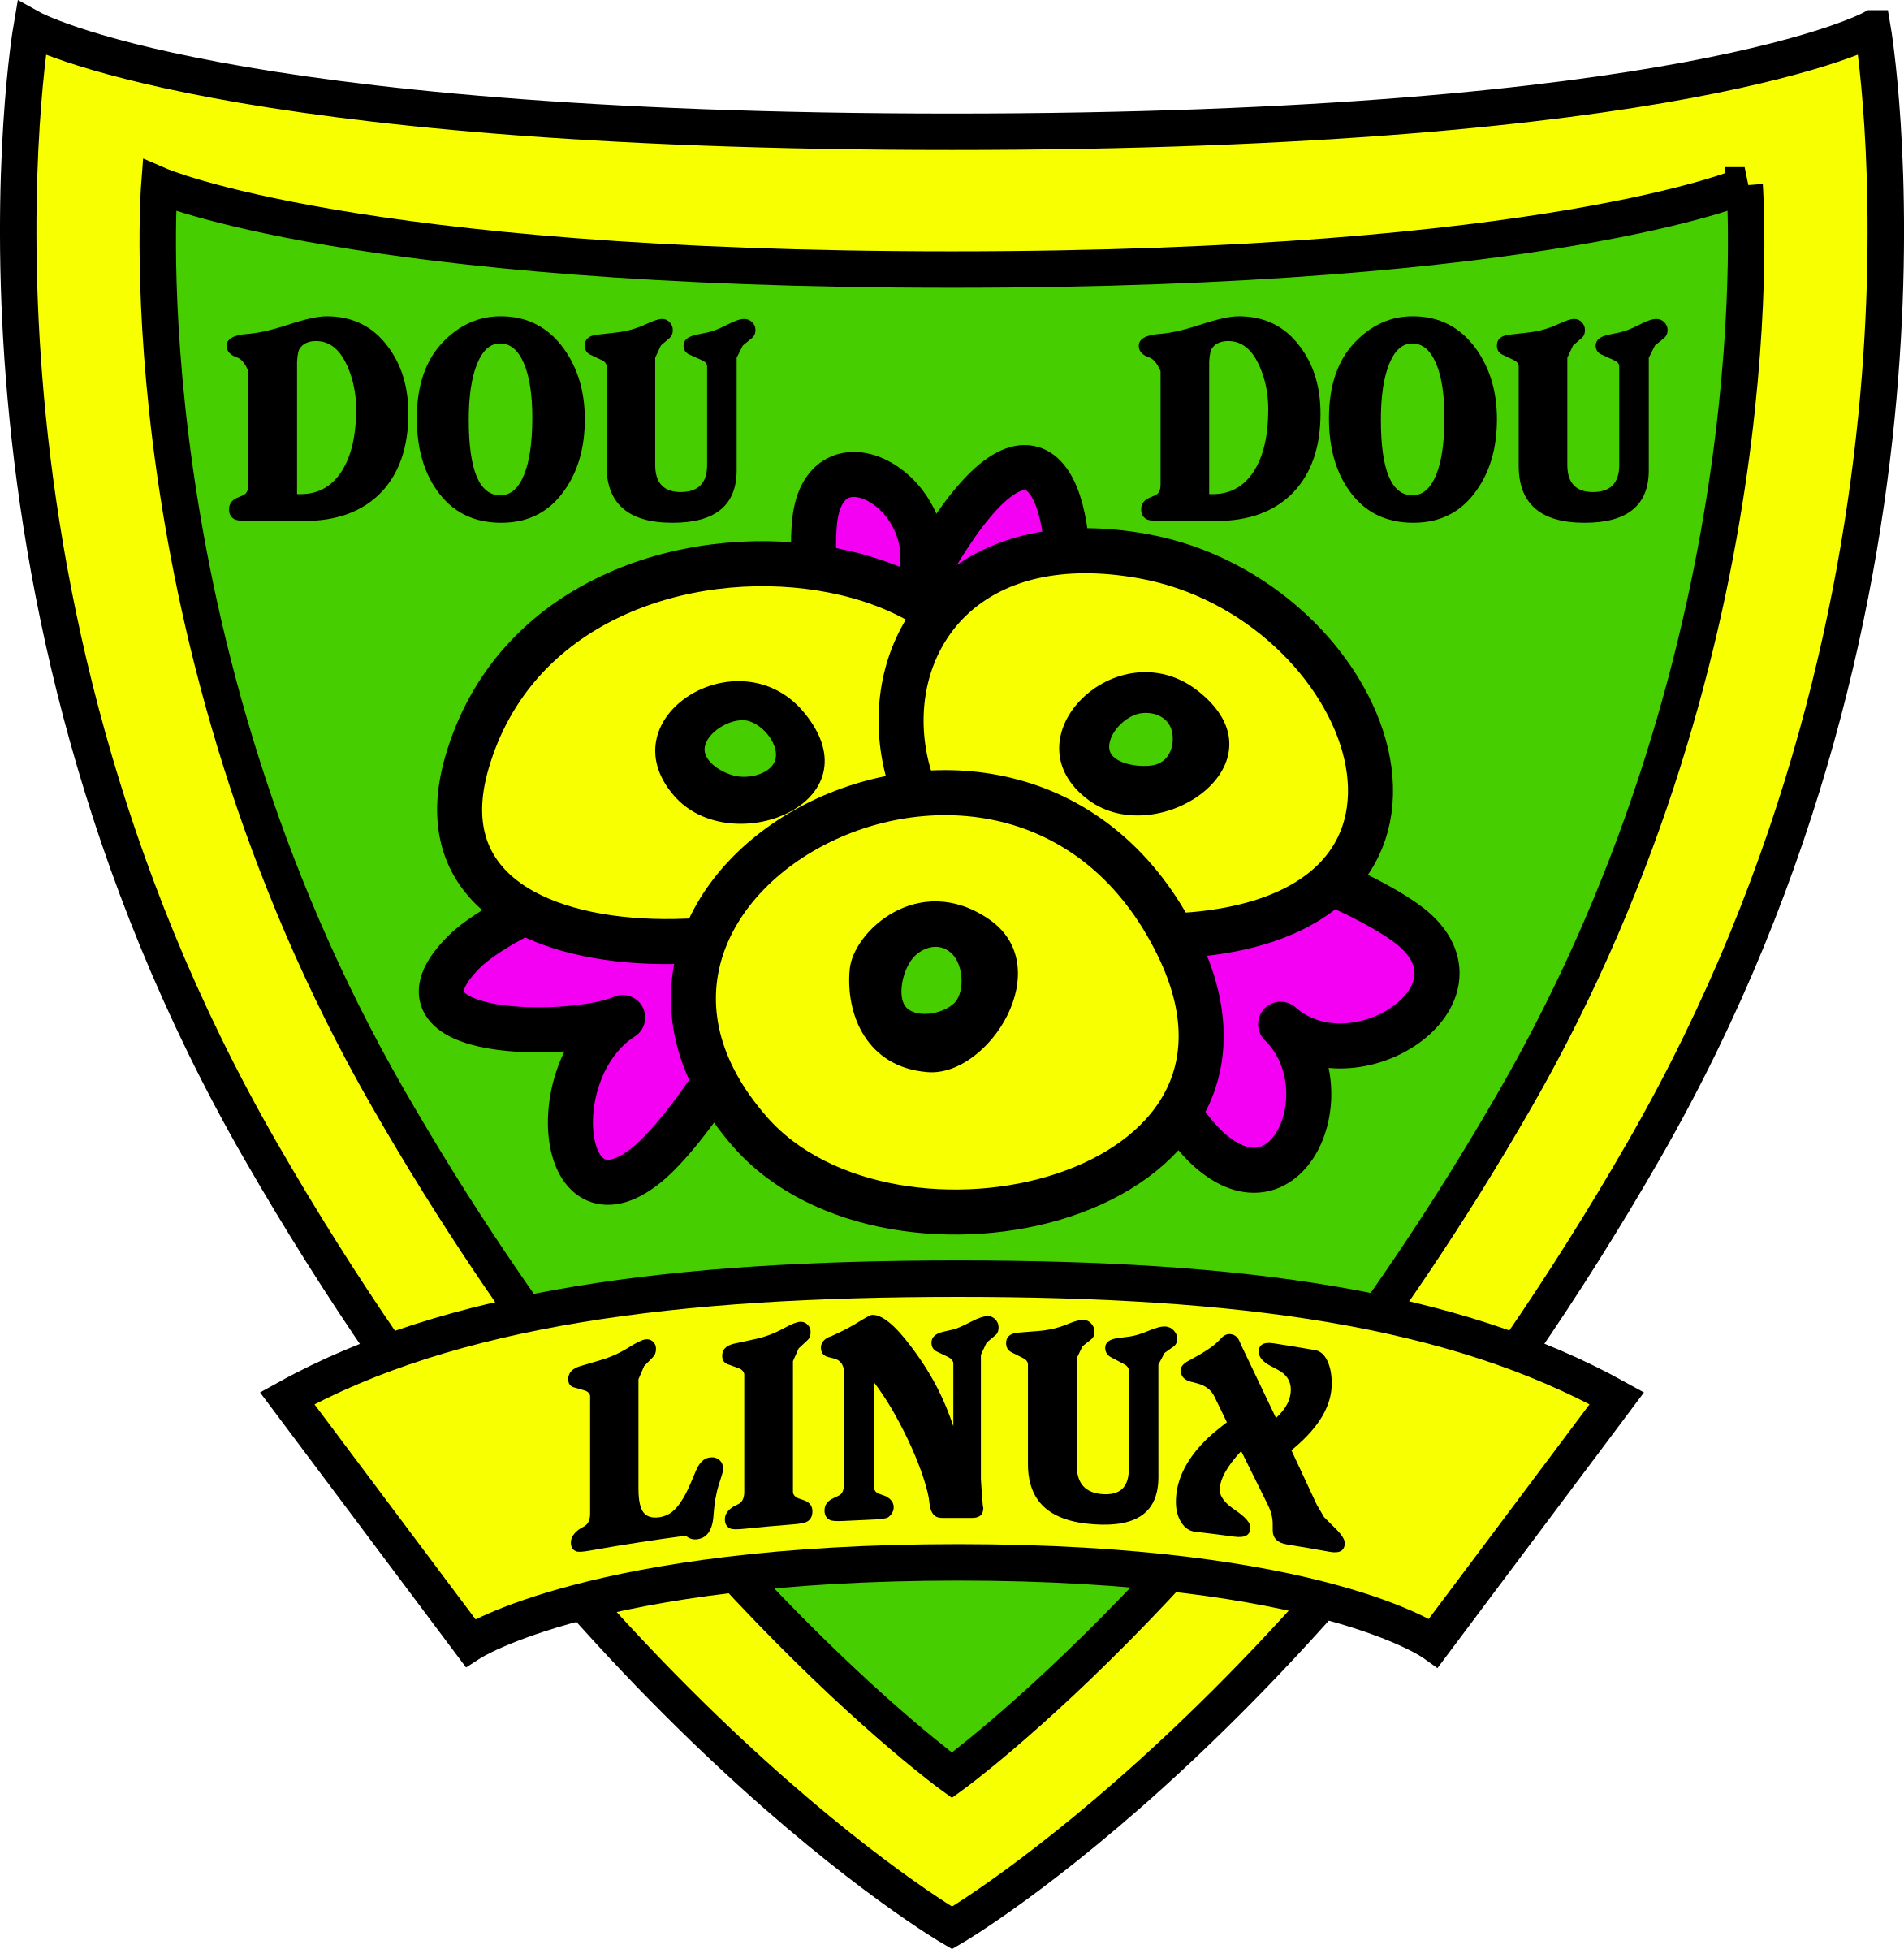 DouDouLinux Flower Remix by algotruneman